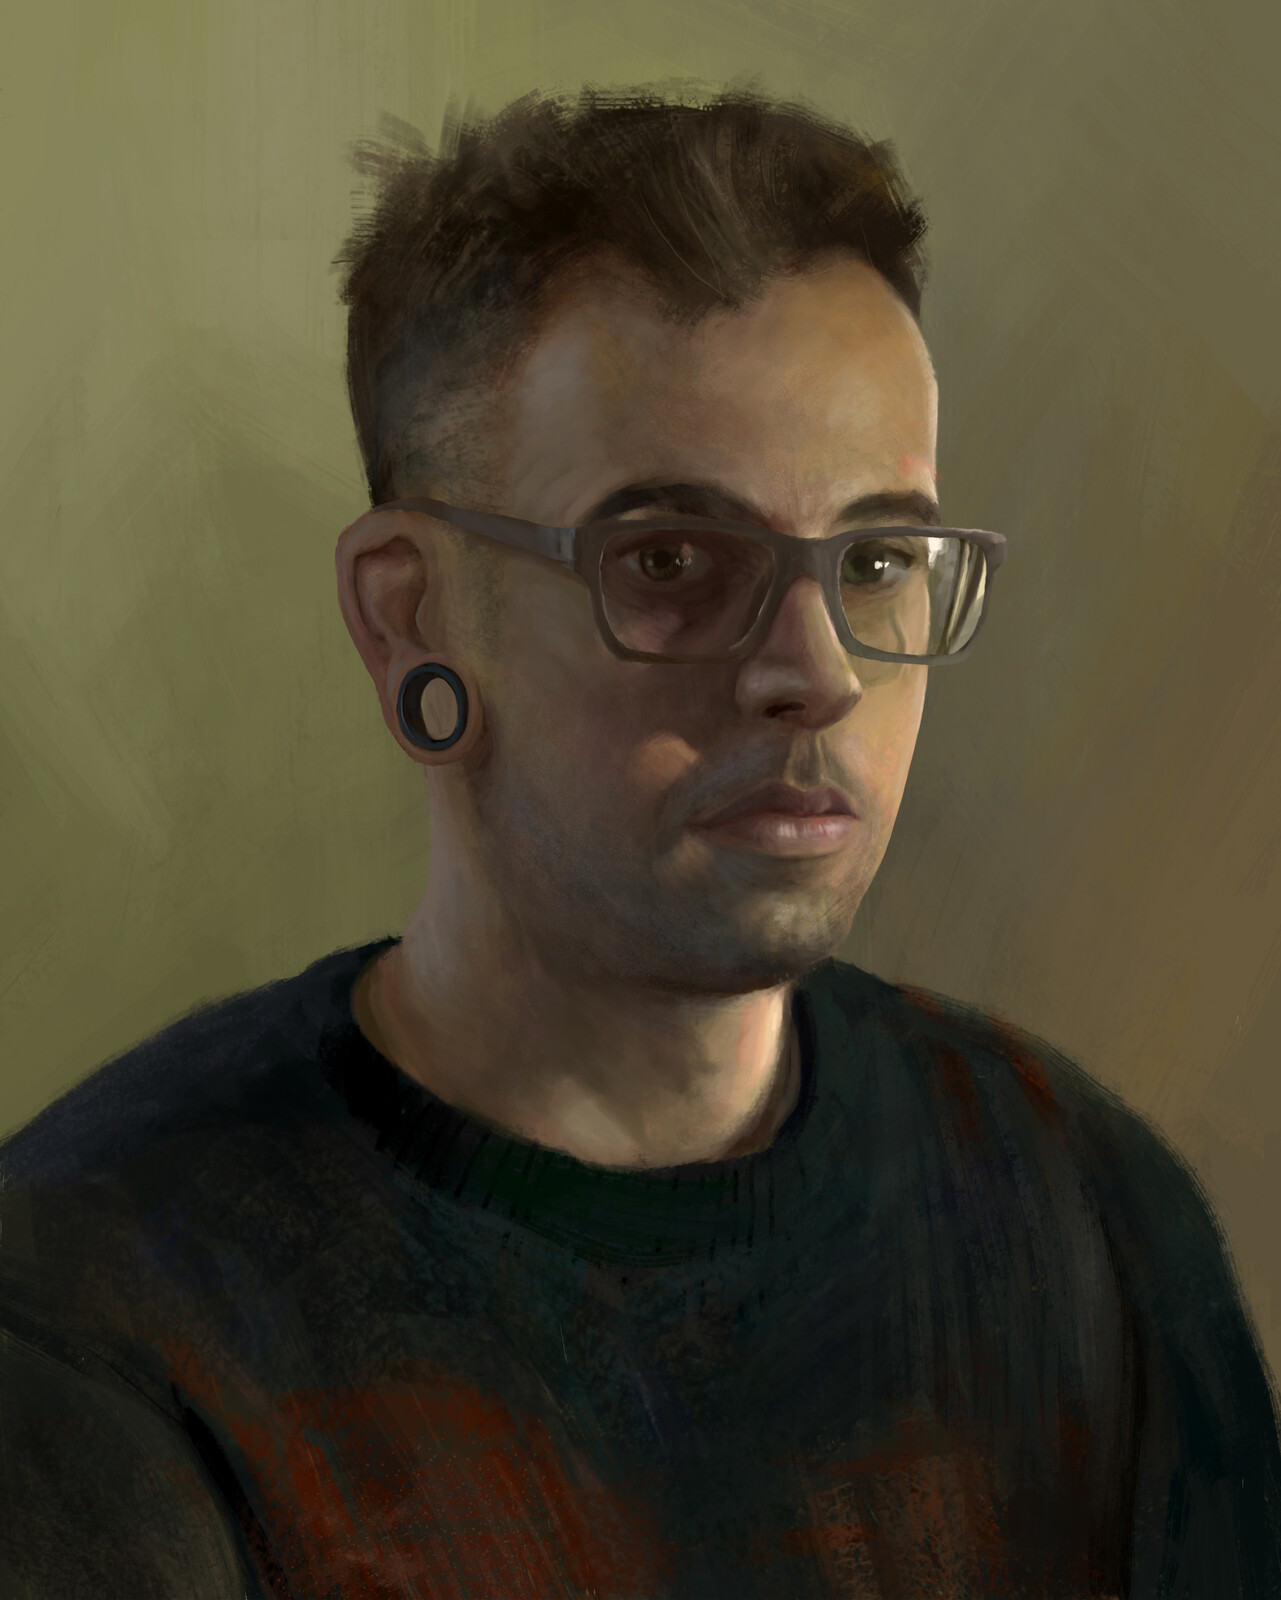 Self-portrait Lighting Study